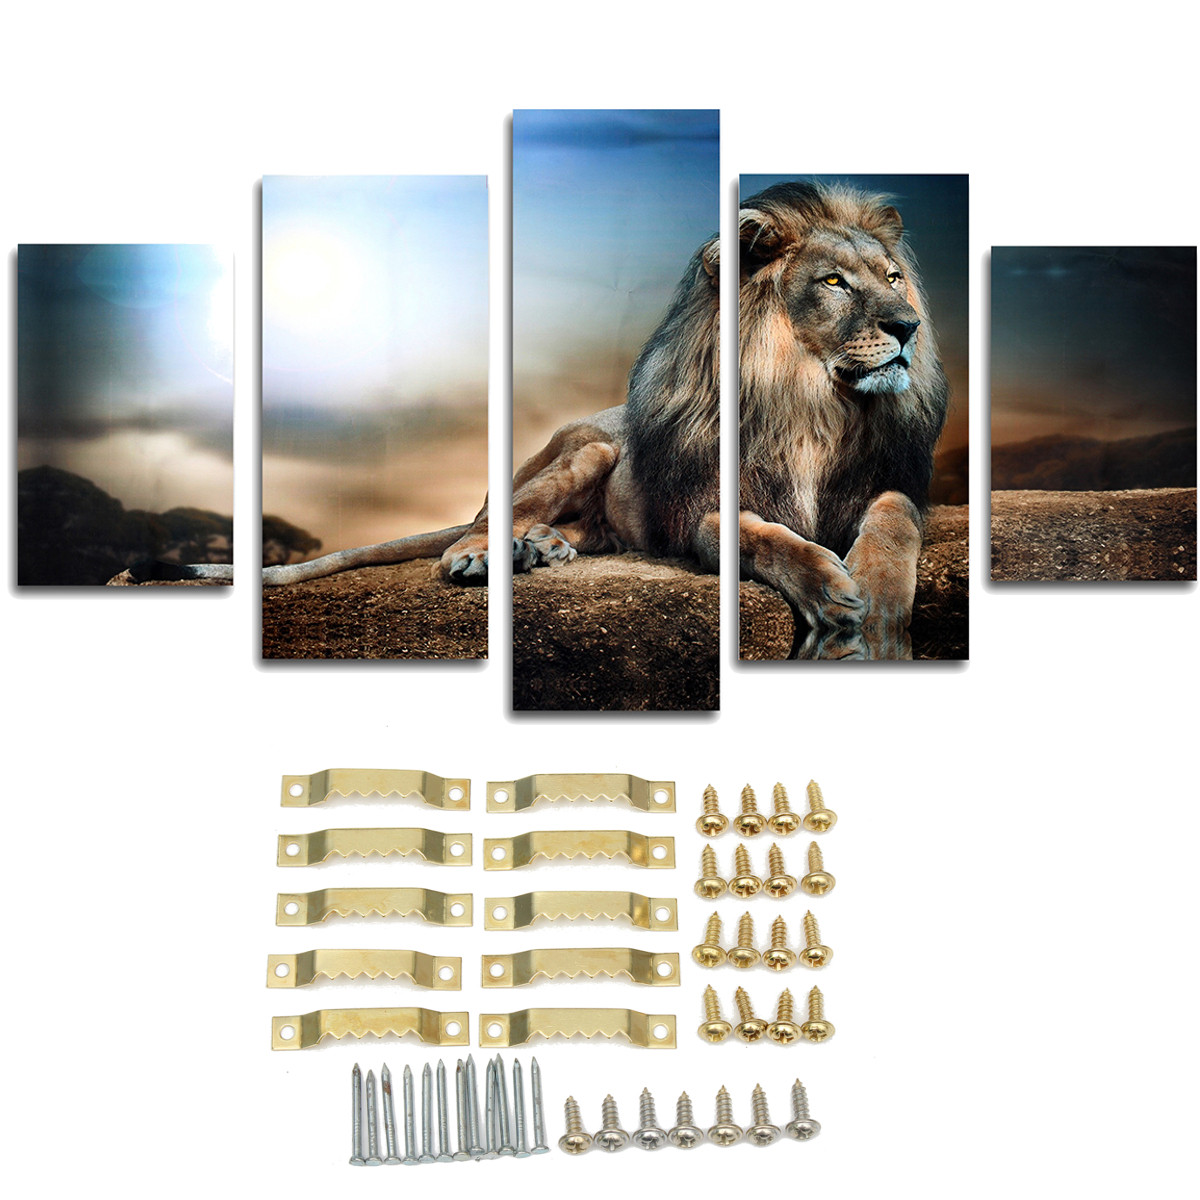 5Pcs/set Modern Abstract Sitting Lion Canvas Oil Painting Picture Print Home Wall Art Decoration Present Gift